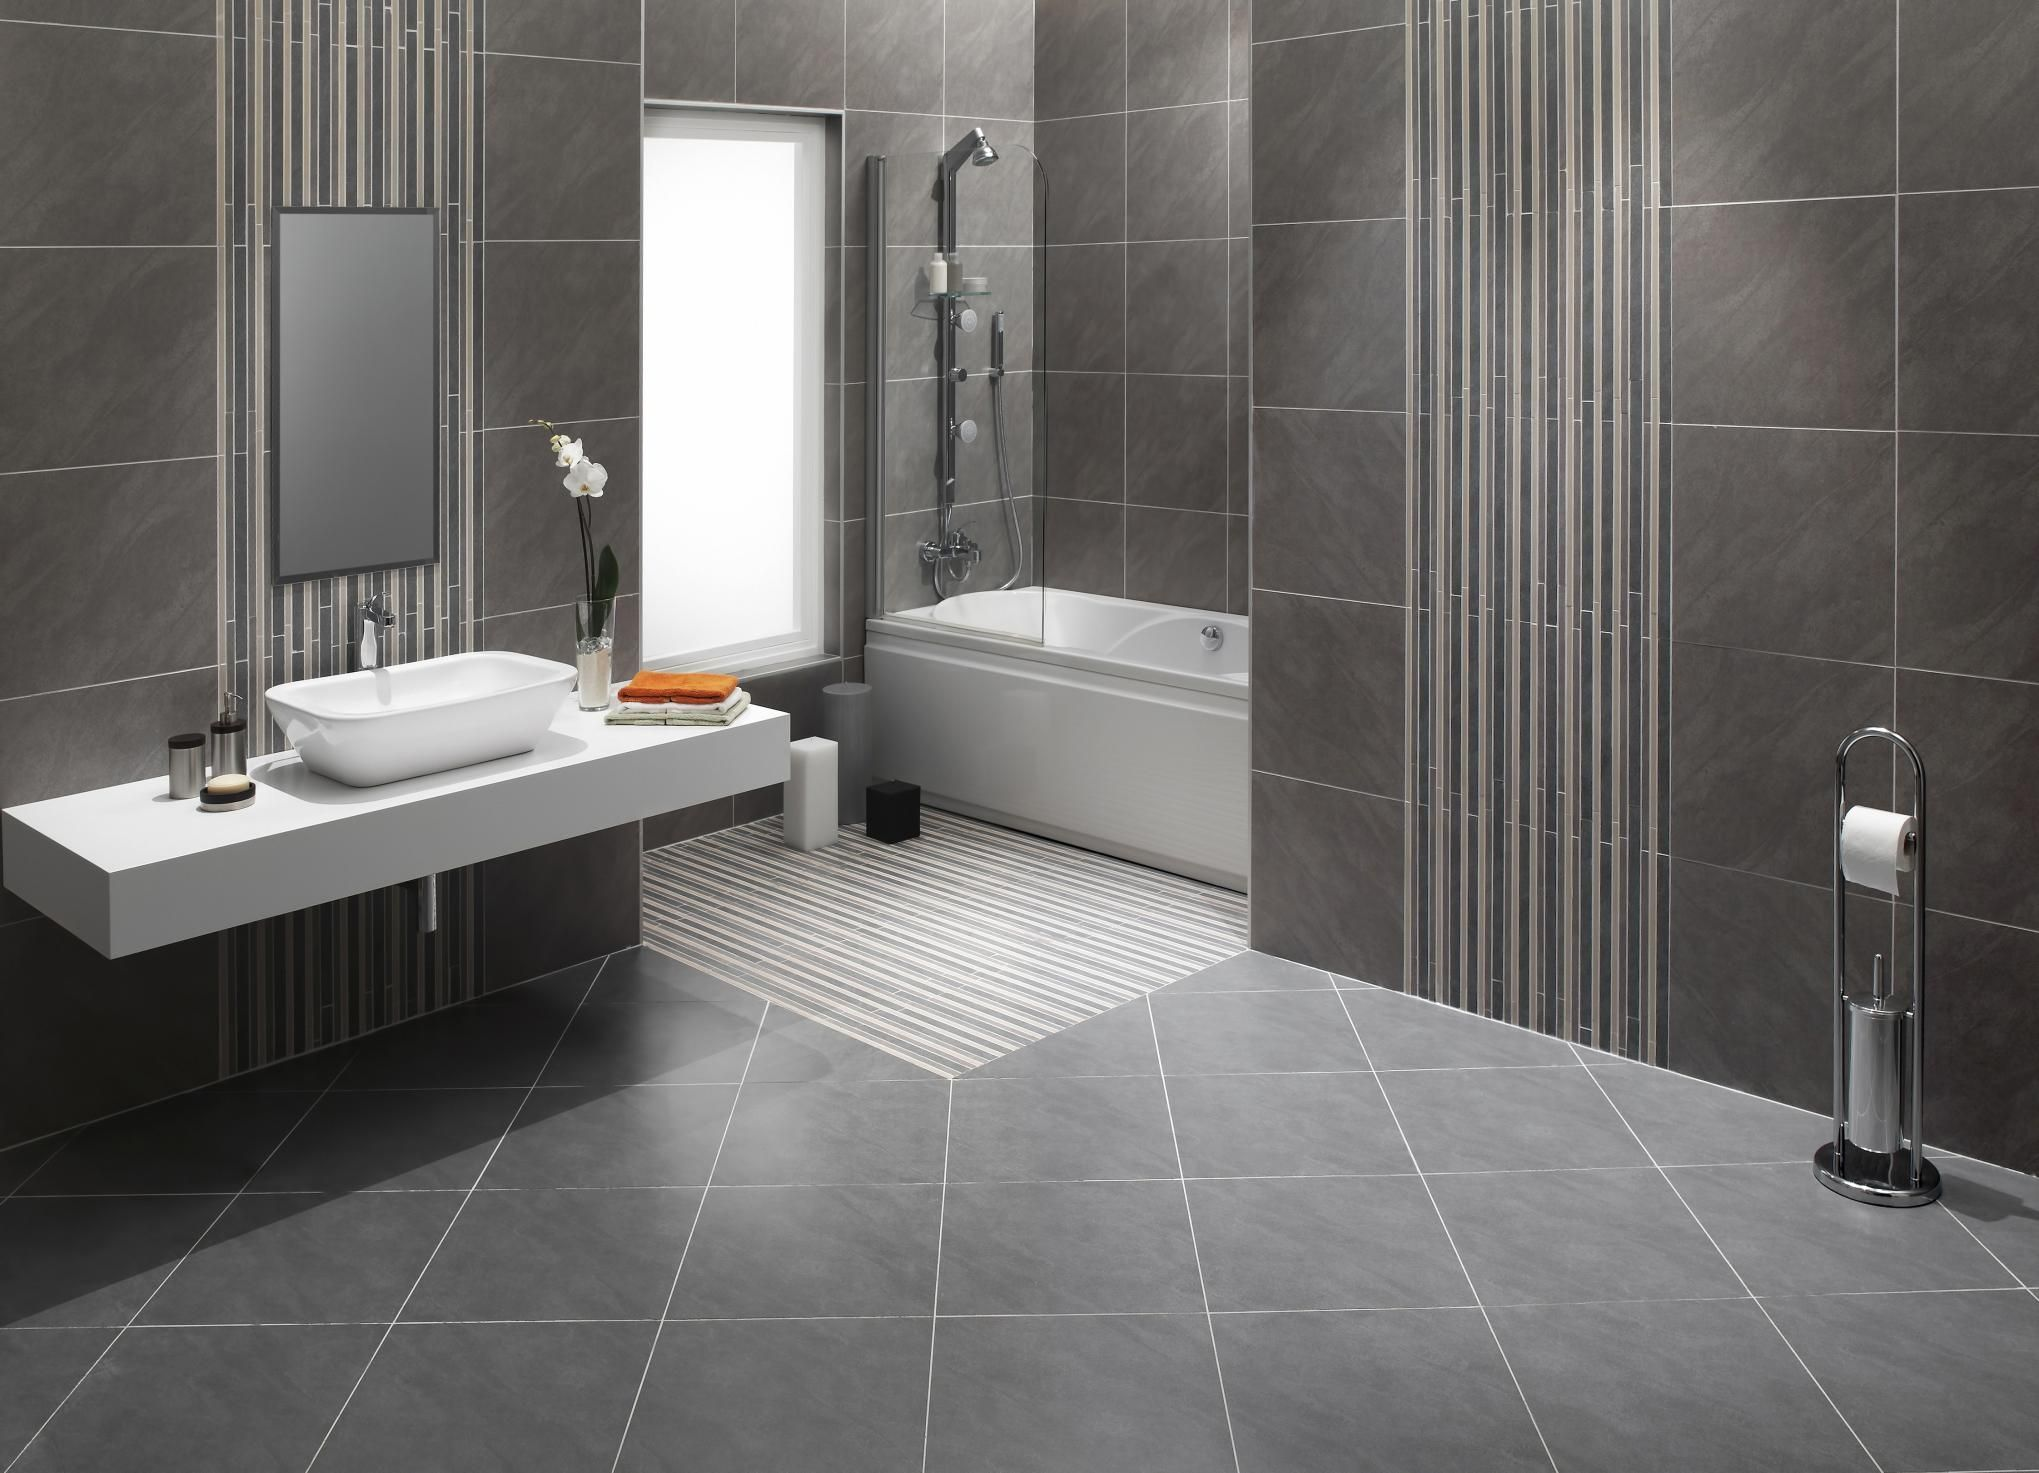 stunning-bathroom-tiles-for-the-home-interior-design-pic-of-kajaria-concept-and-styles_FILES_13298